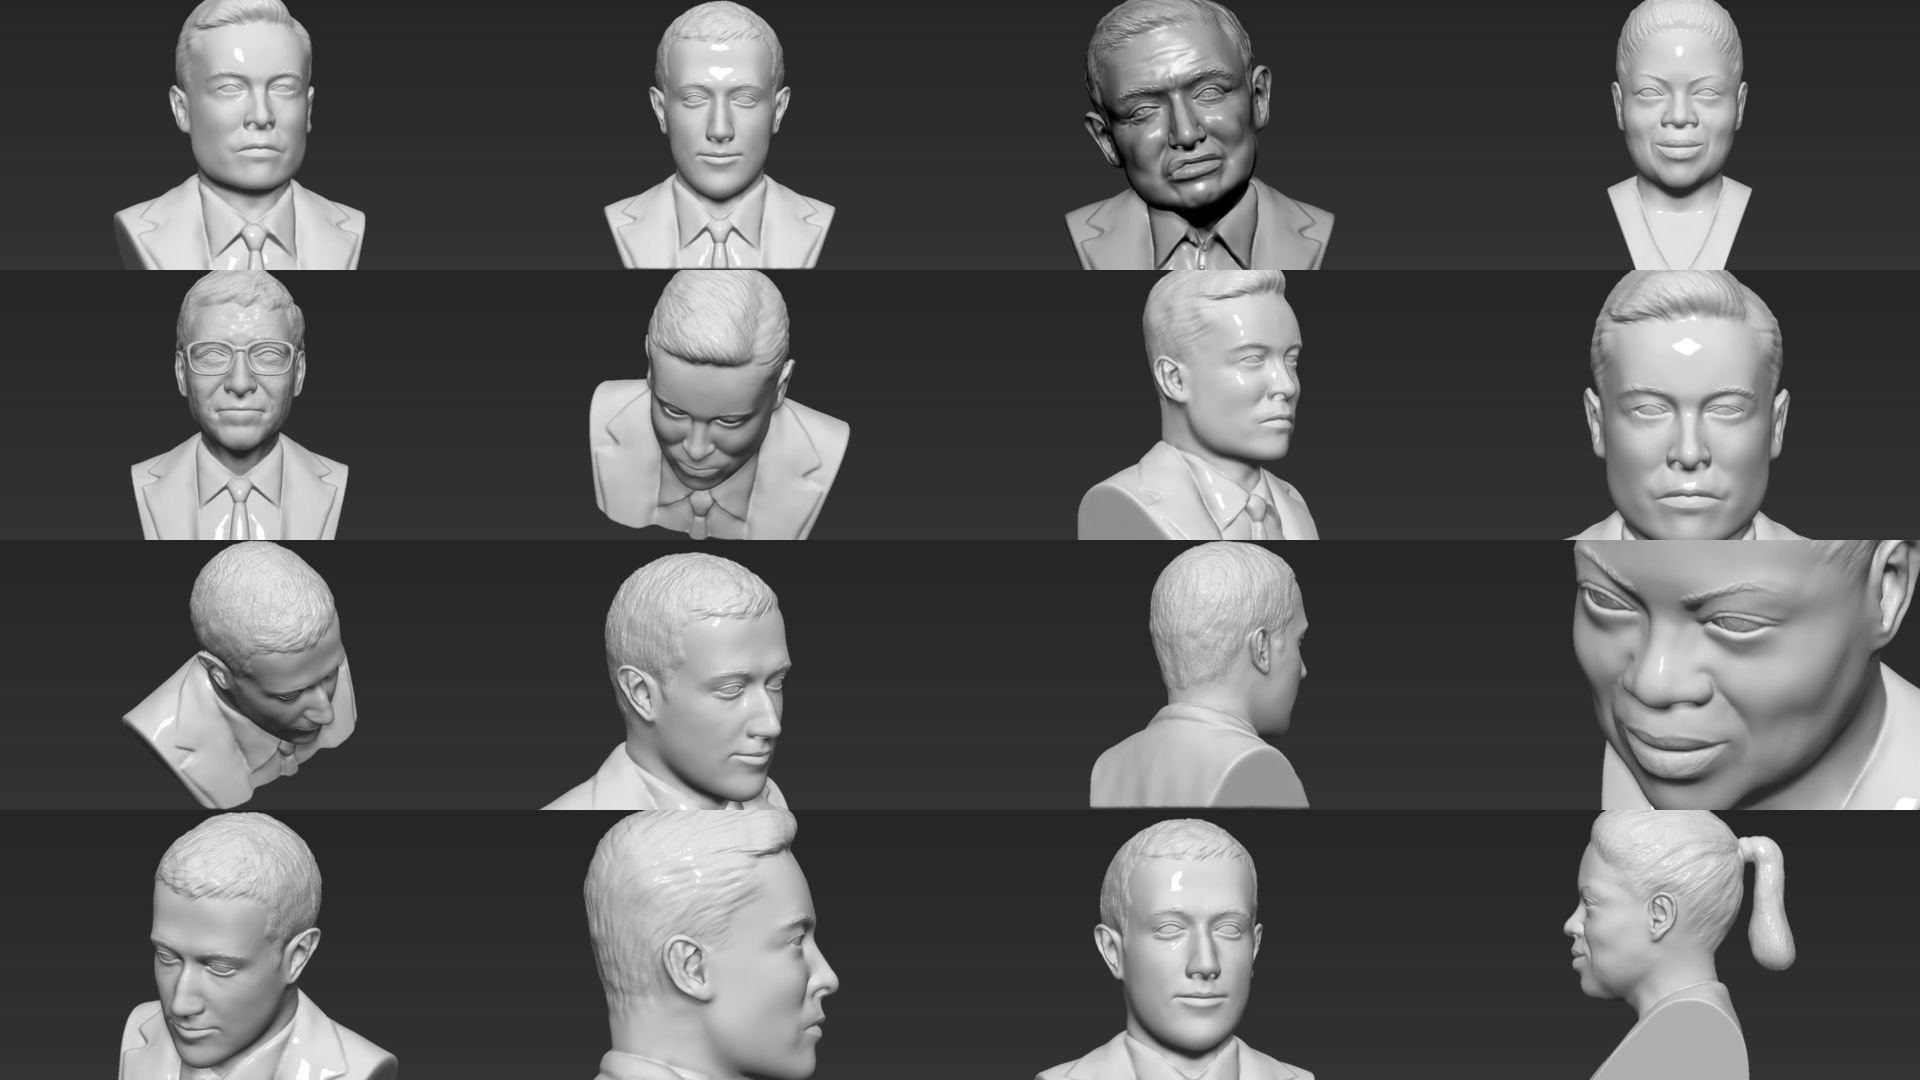 Most Influential People busts 3D printing ready